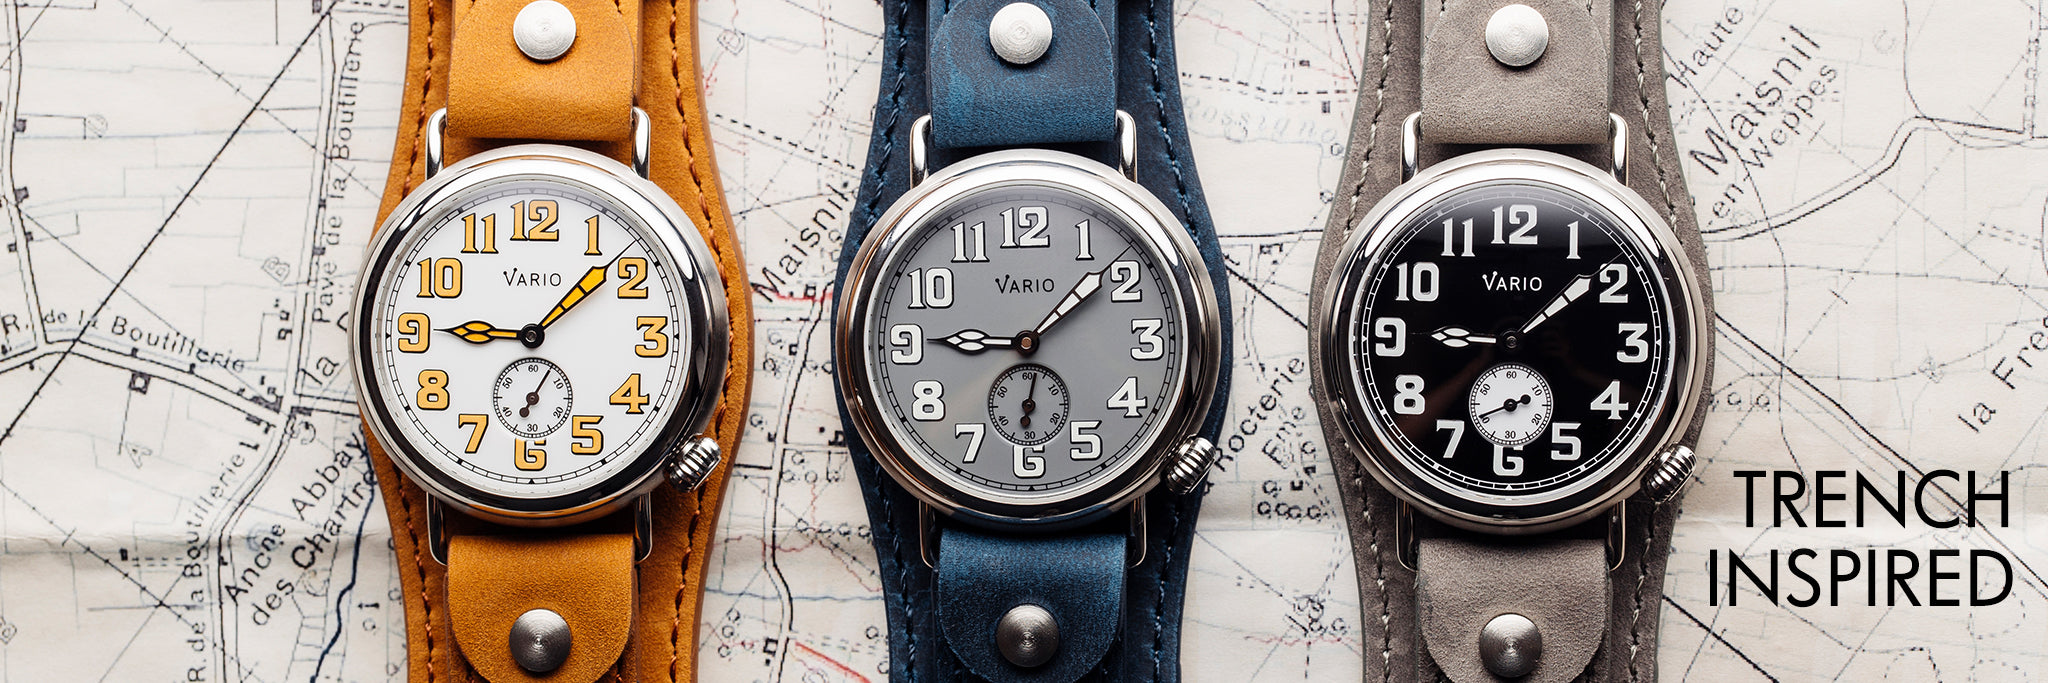 vario trench and medic watch